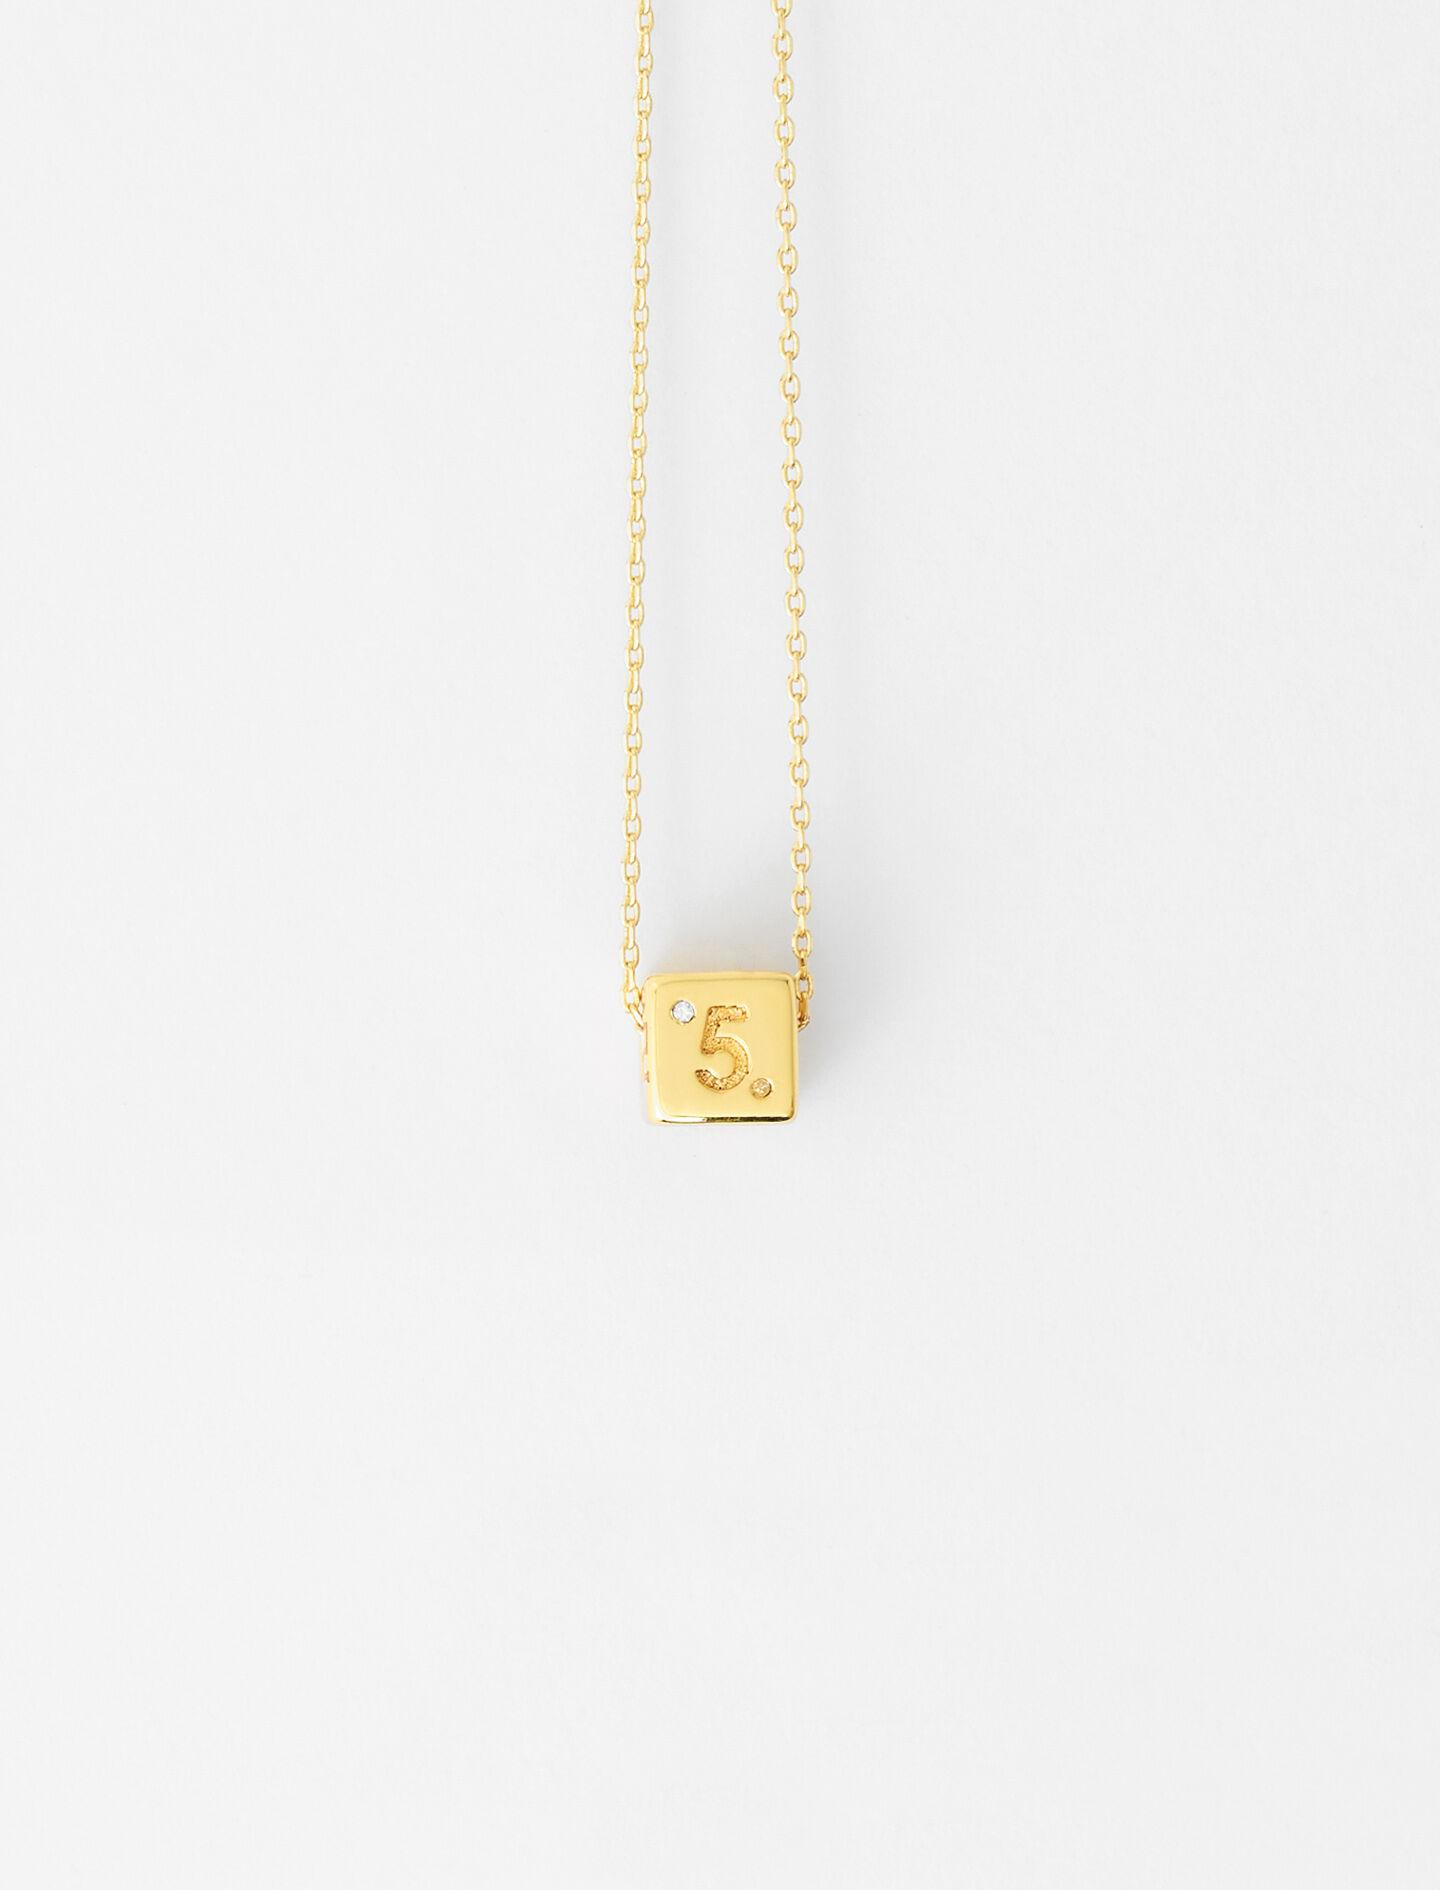 NUMBER 5 DICE NECKLACE